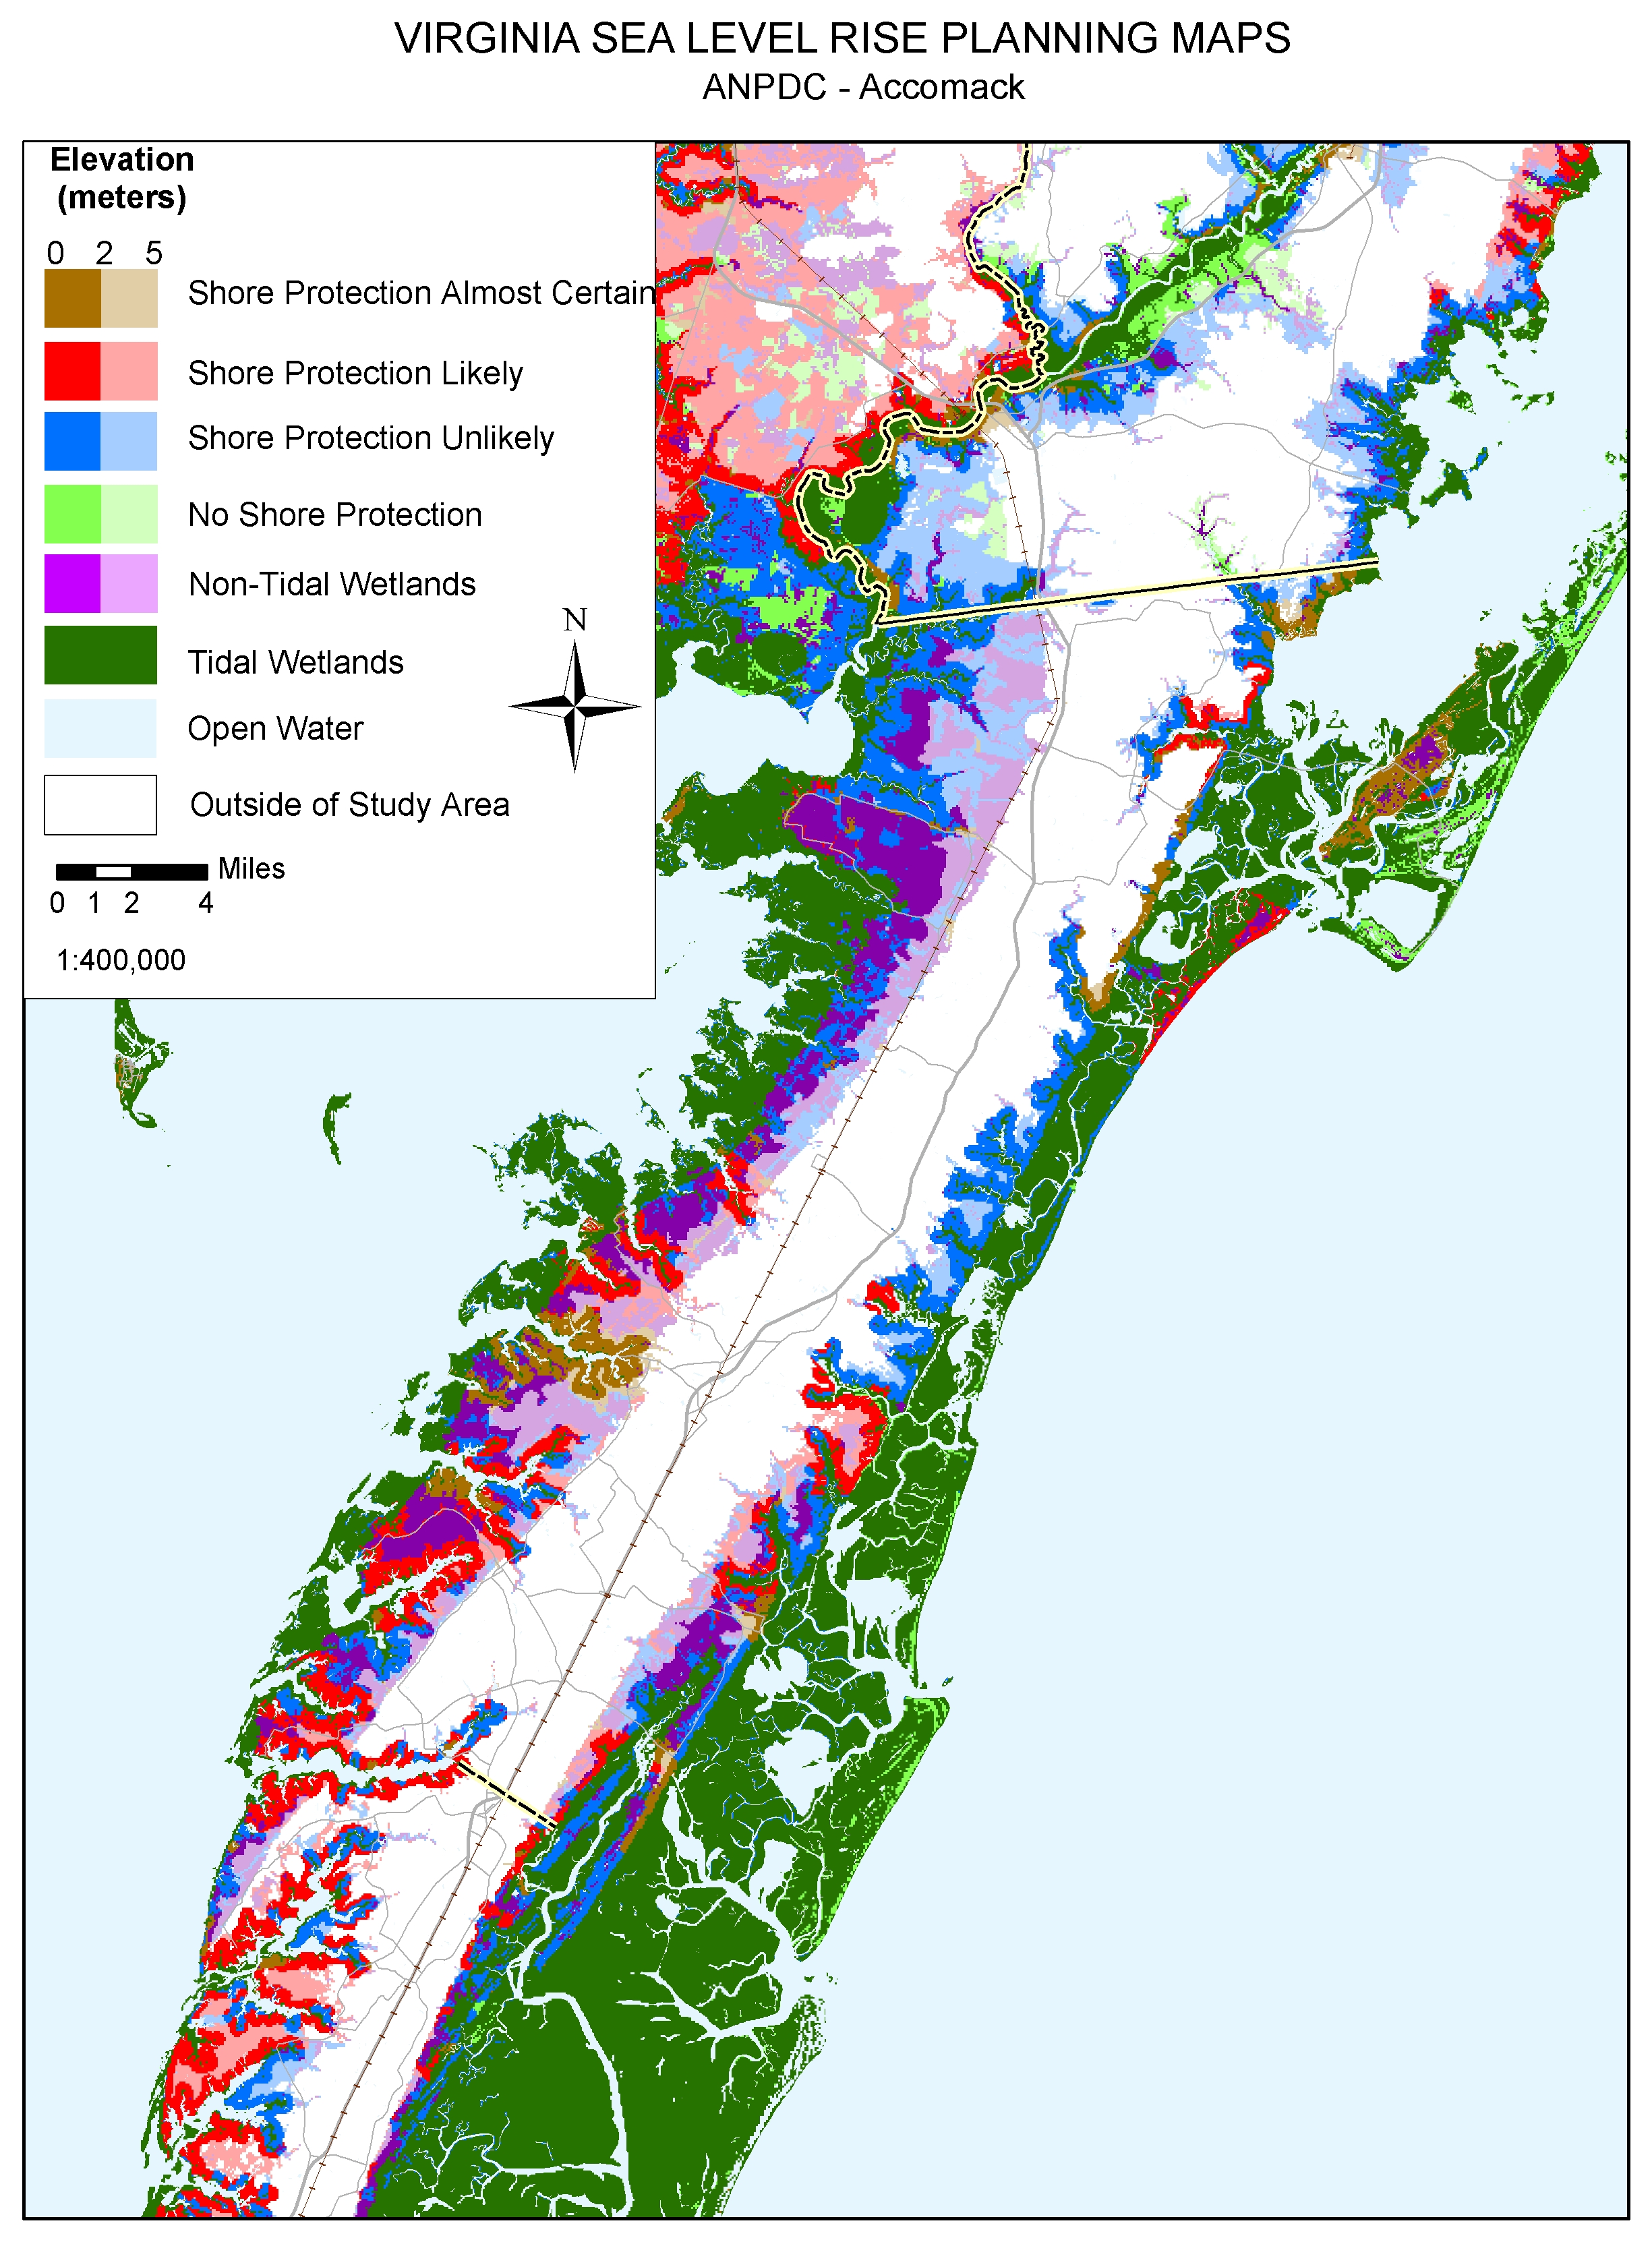 Chincoteague, Virginia: sea level rise planning map